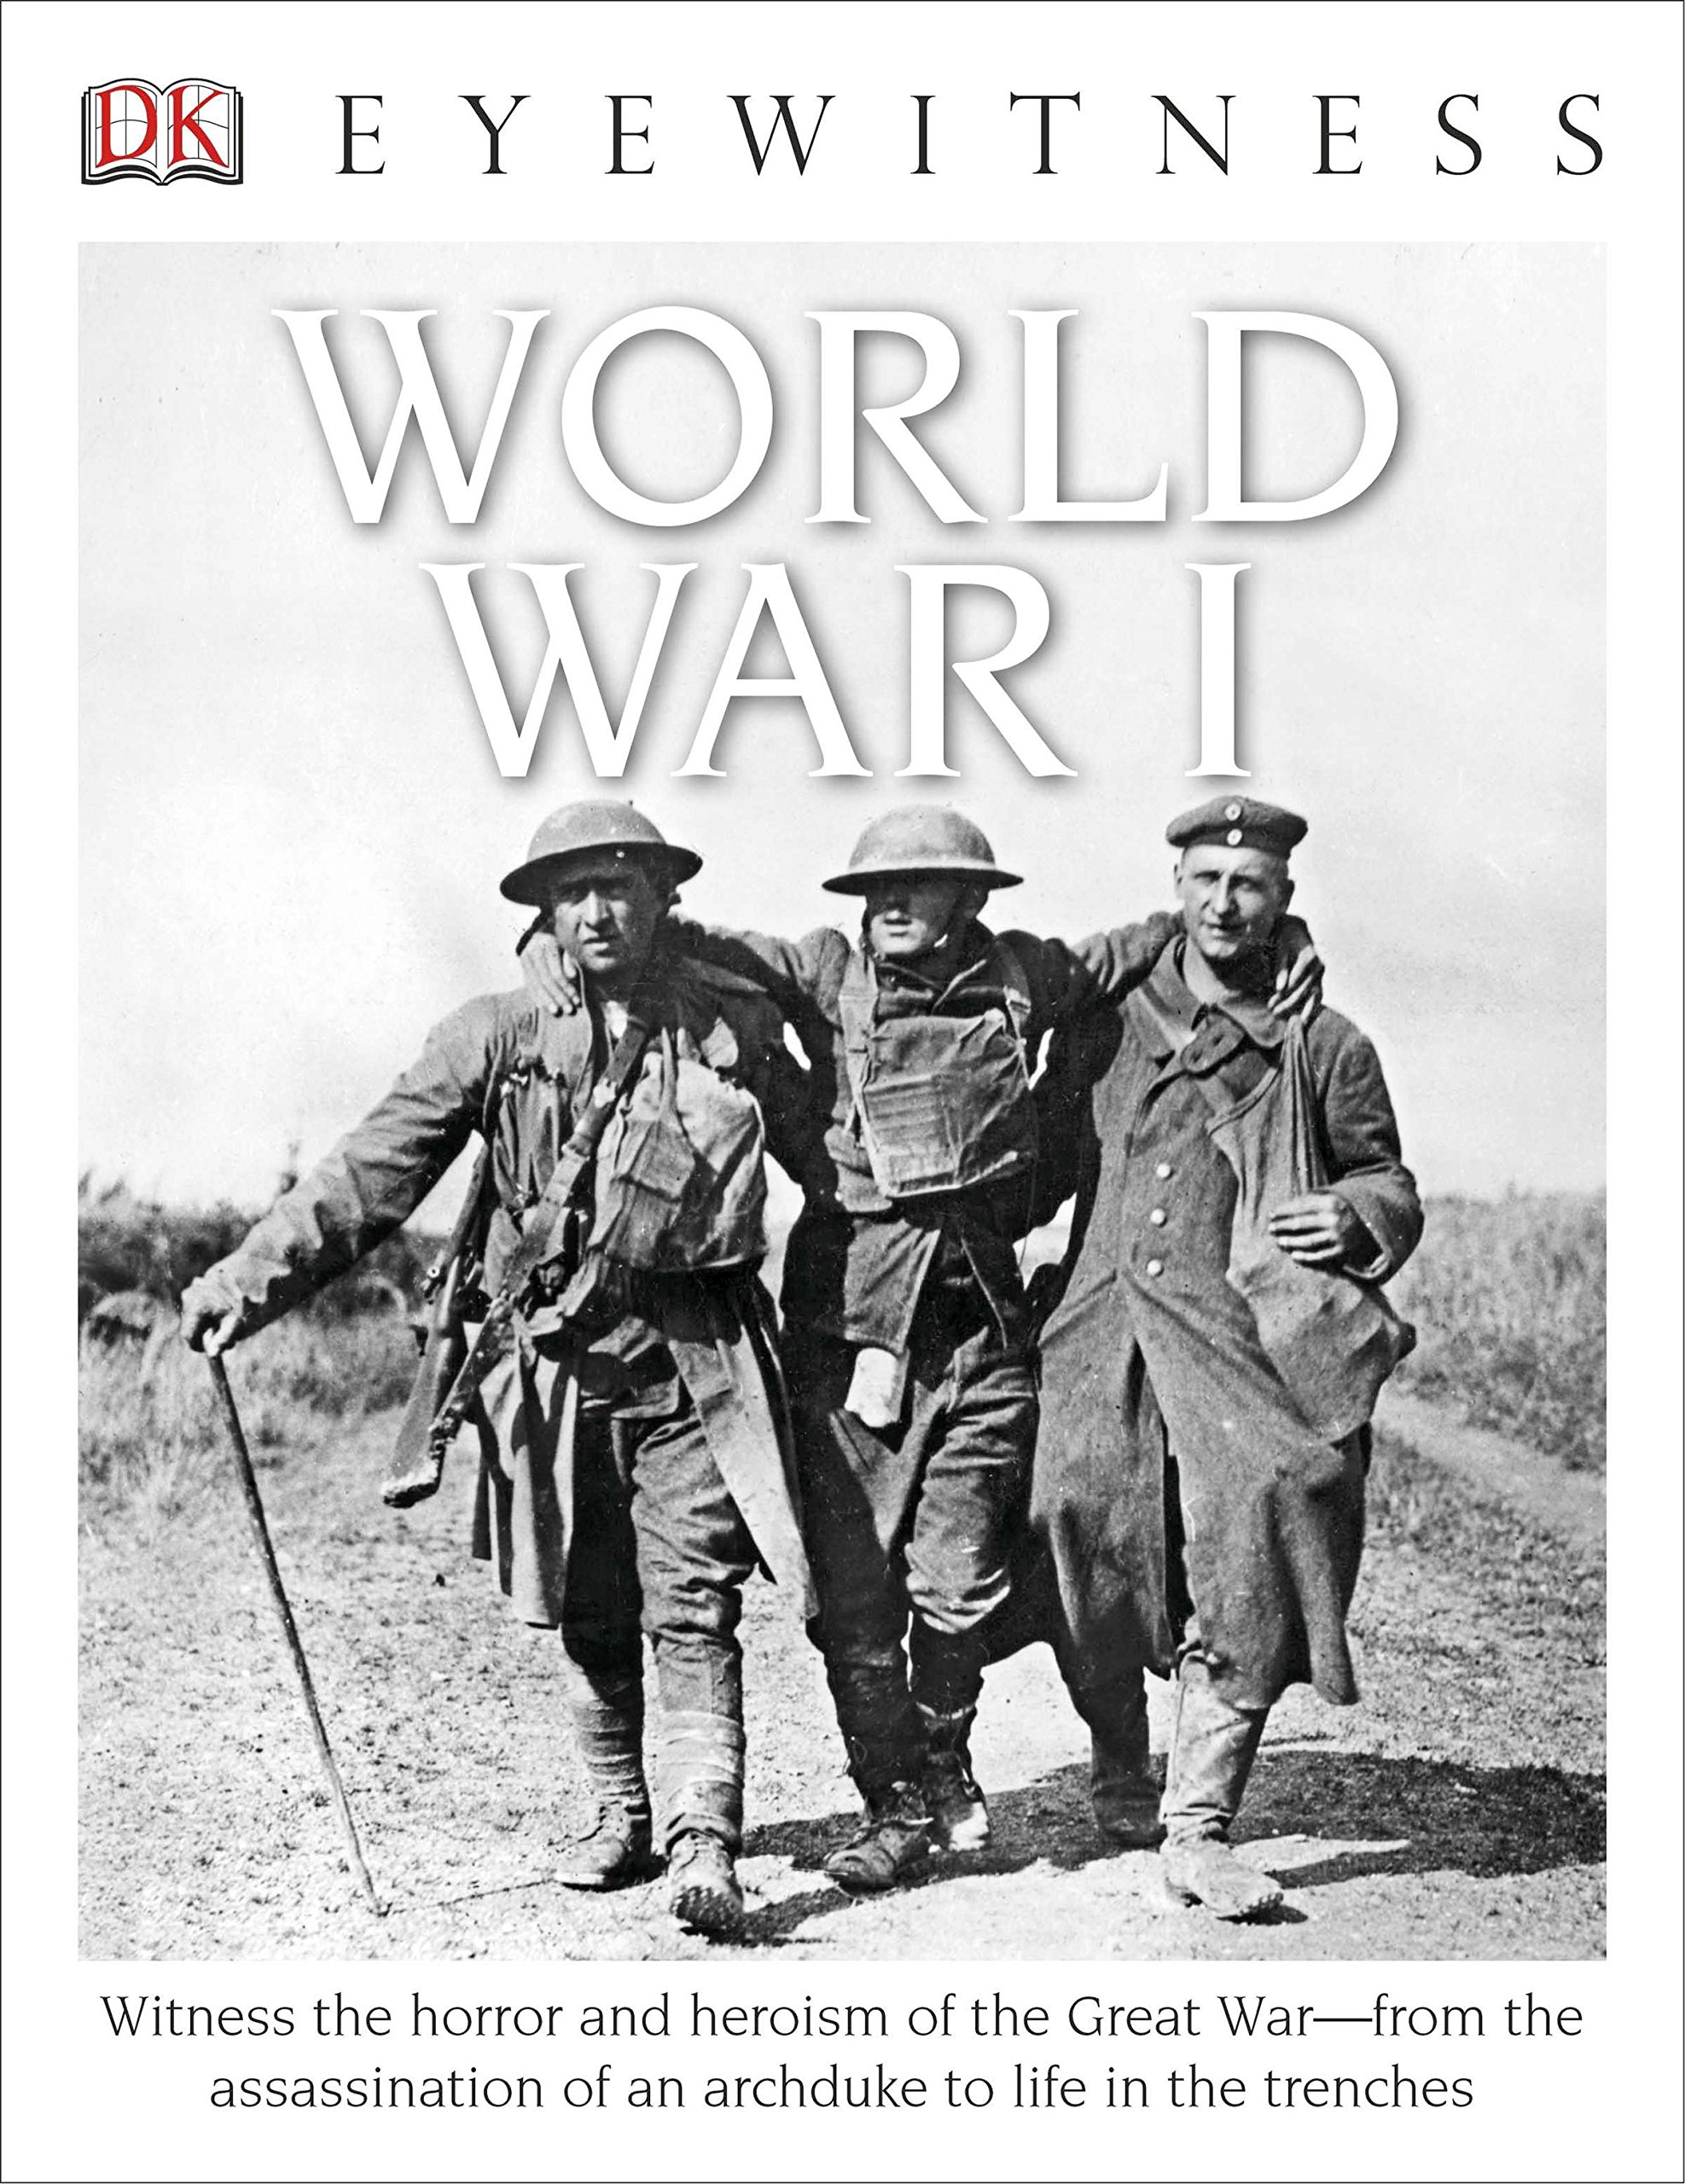 Download DK Eyewitness Books: World War I: Witness the Horror and Heroism of the Great War from the Assassination of an Arc ebook